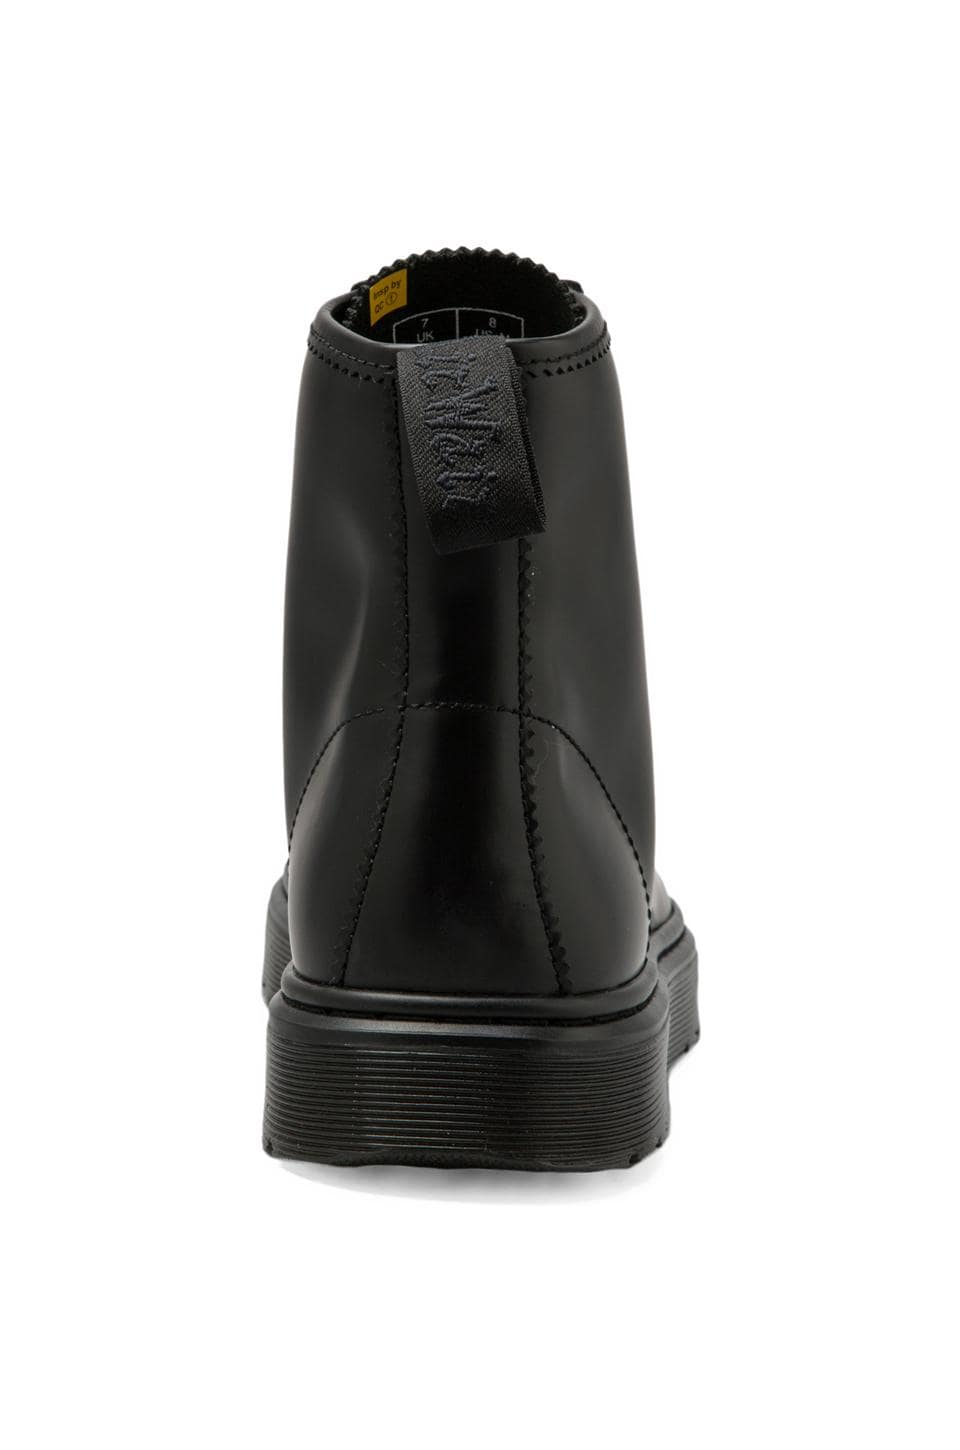 Dr. Martens Mayer Lace to Toe Boot in Black